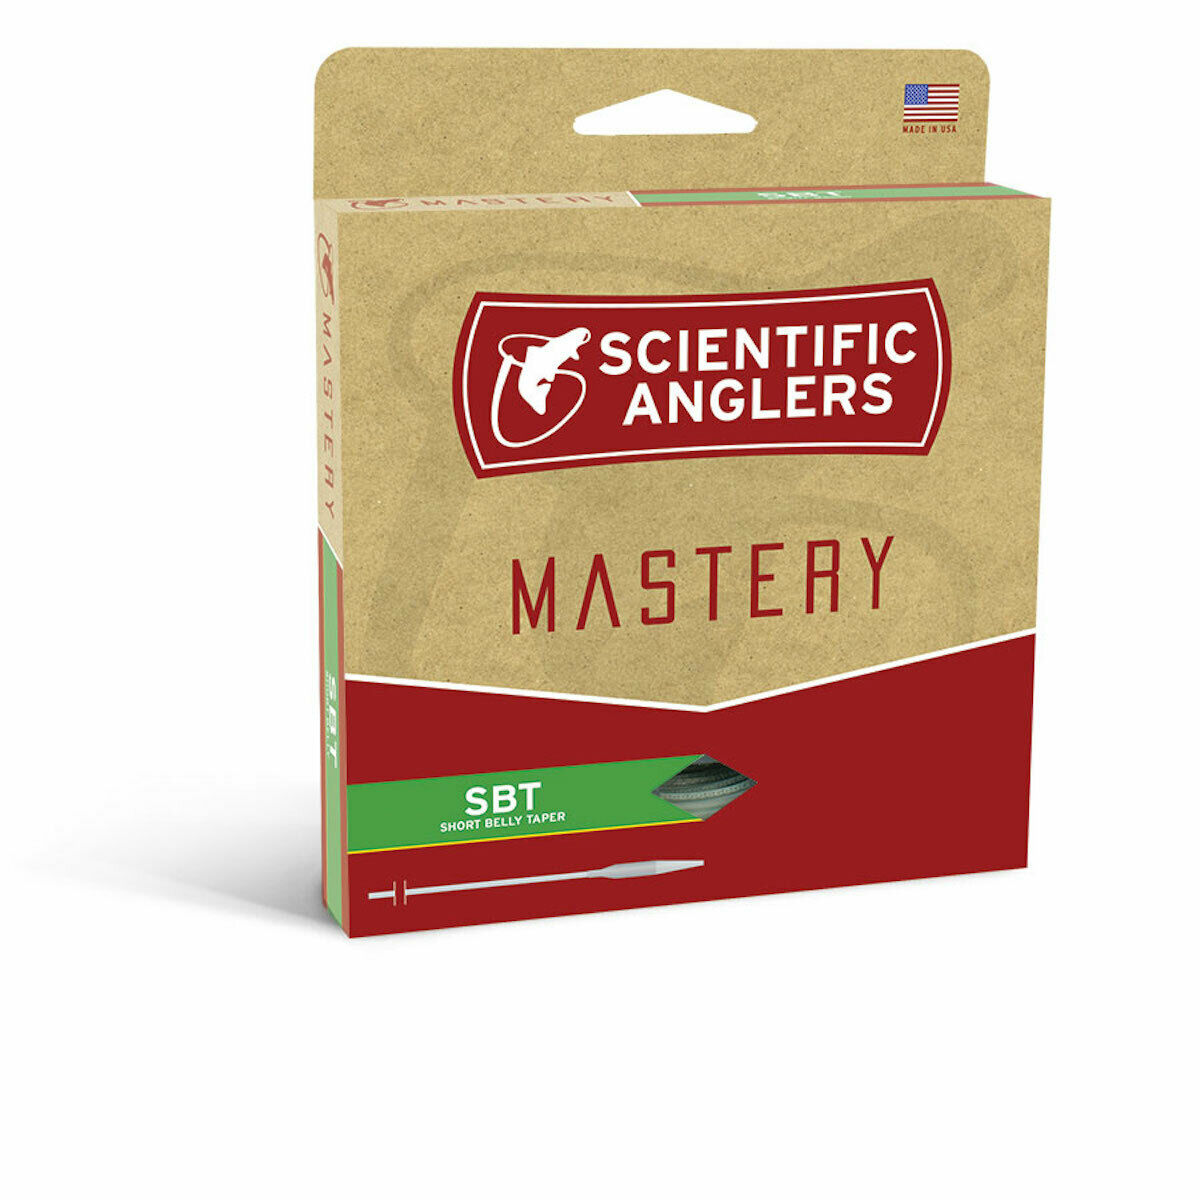 Scientific Anglers Mastery SBT WF5F Fly Line weight WF5F